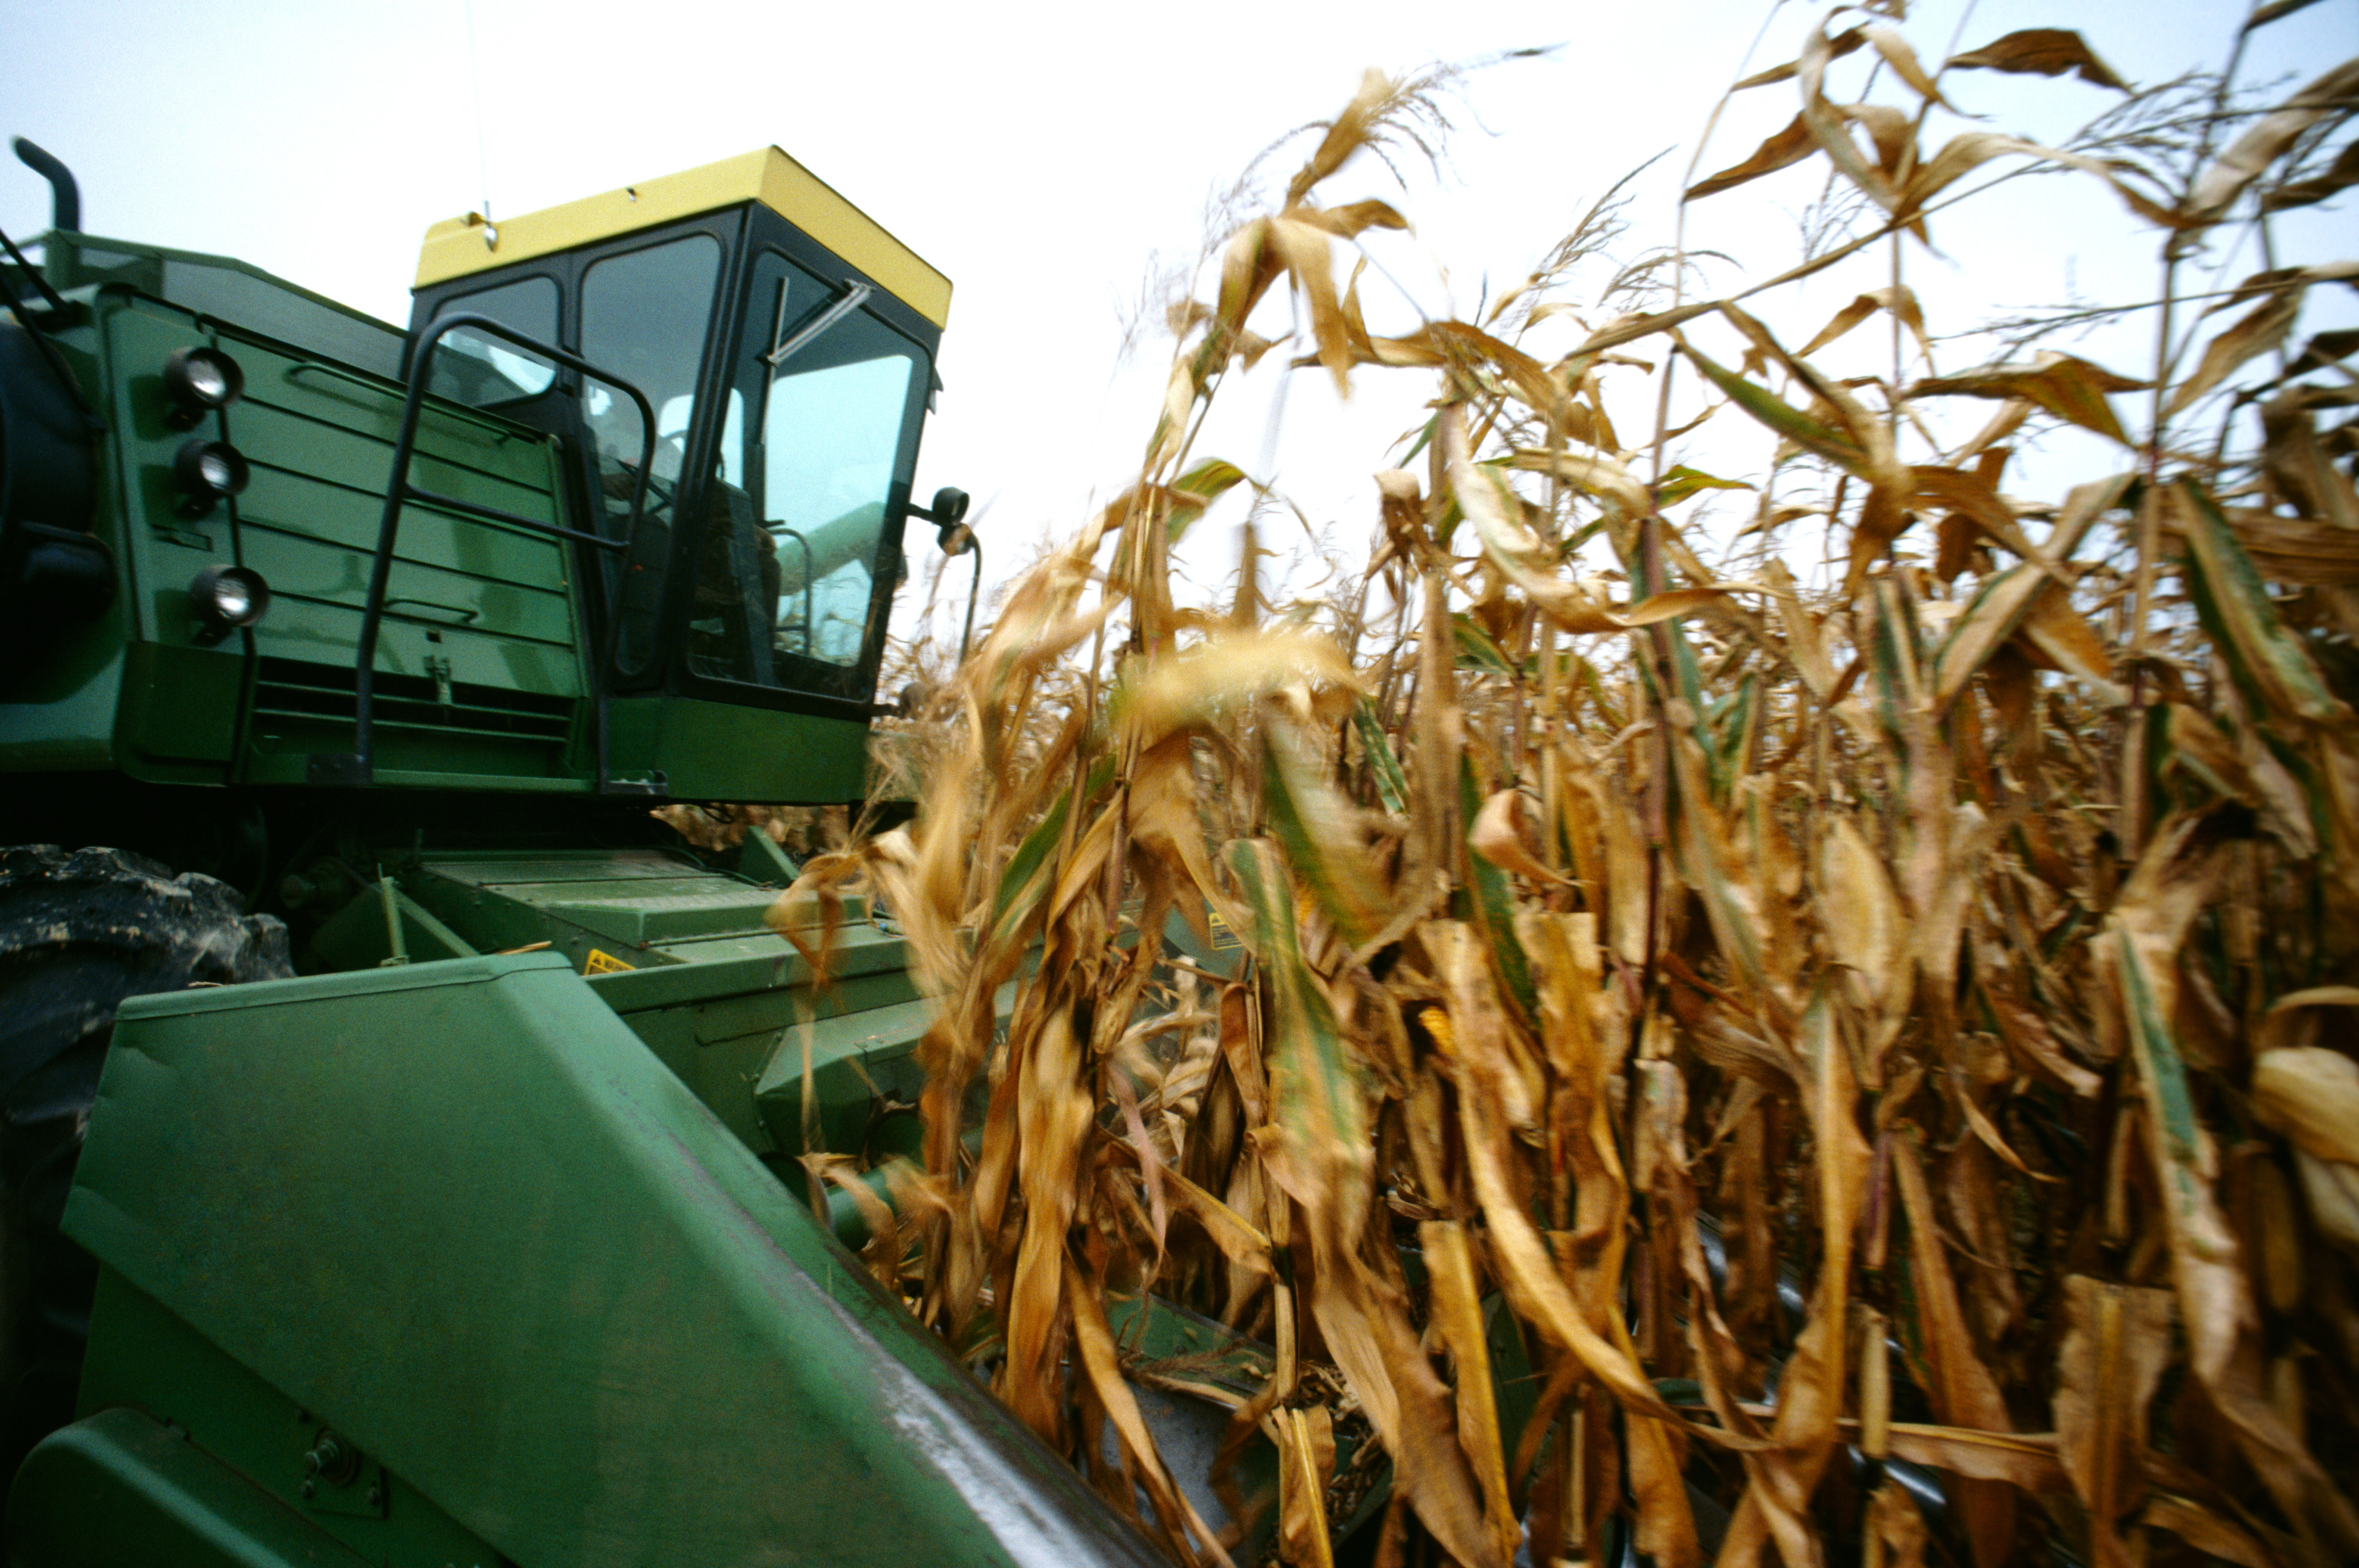 StockPhotography_Purchased_Photo_Agriculture_026